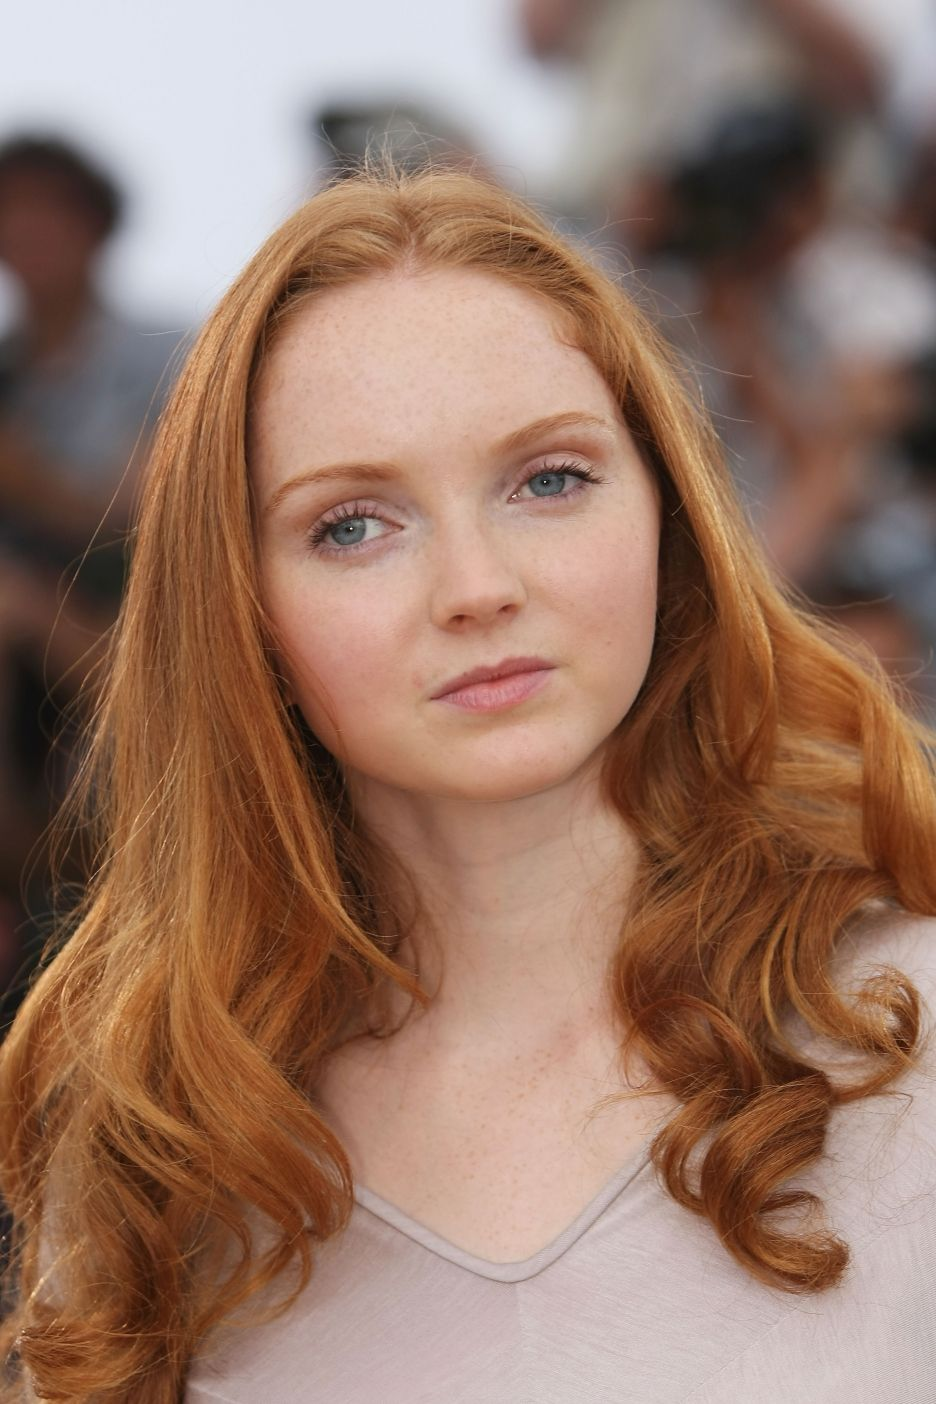 Lily cole pics Wallpapers | HD Wallpapers Pics | pretty hair and